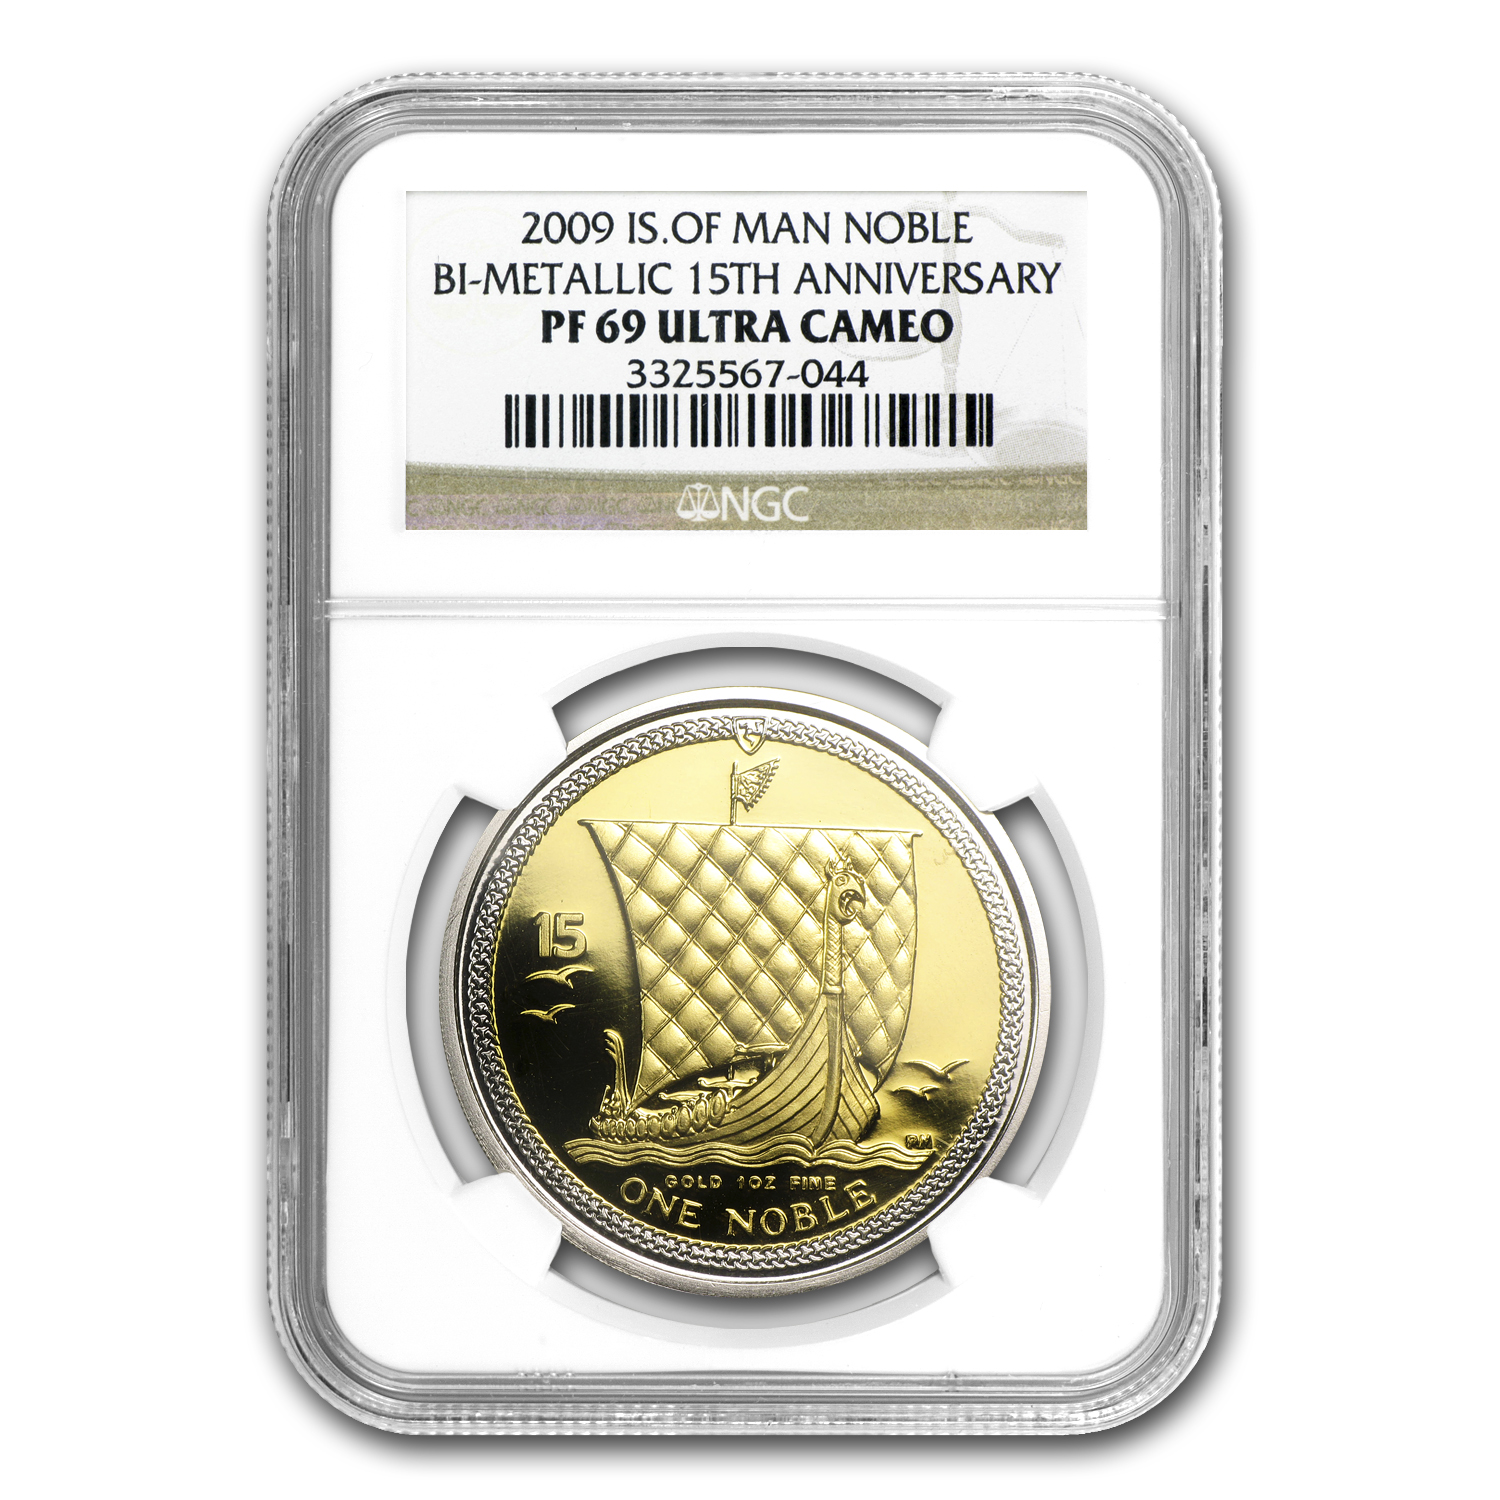 2009 Isle of Man Bi-Metallic Noble PF-69 NGC (15th Anniv)